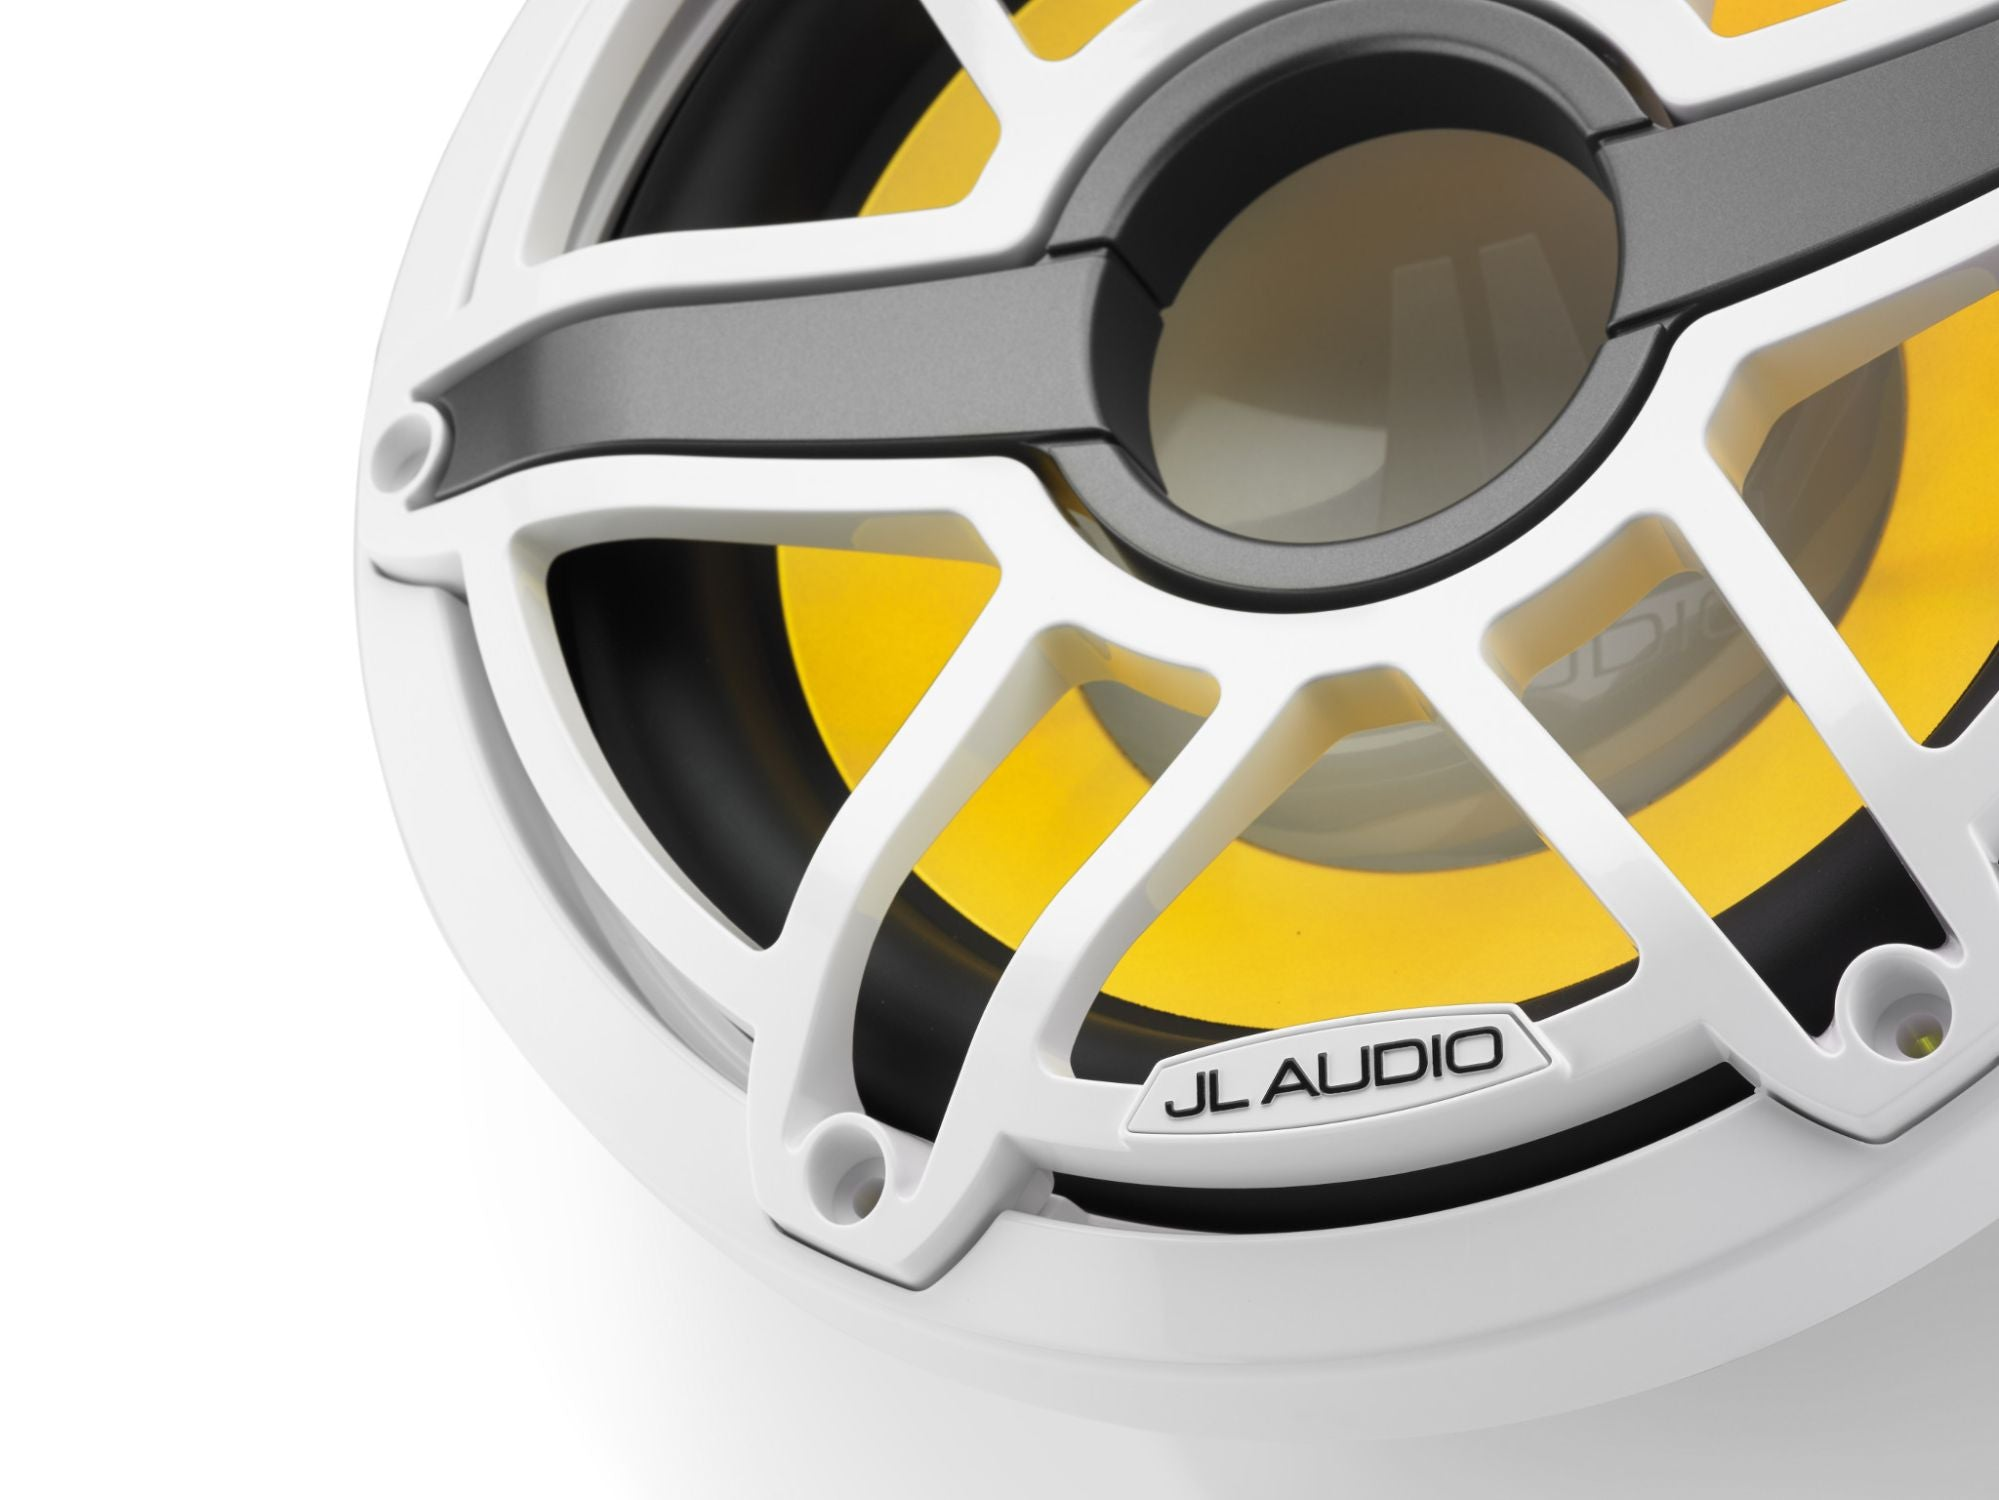 Detail of M6-10IB-S-GwGw-i-4 Subwoofer Lit with Yellow